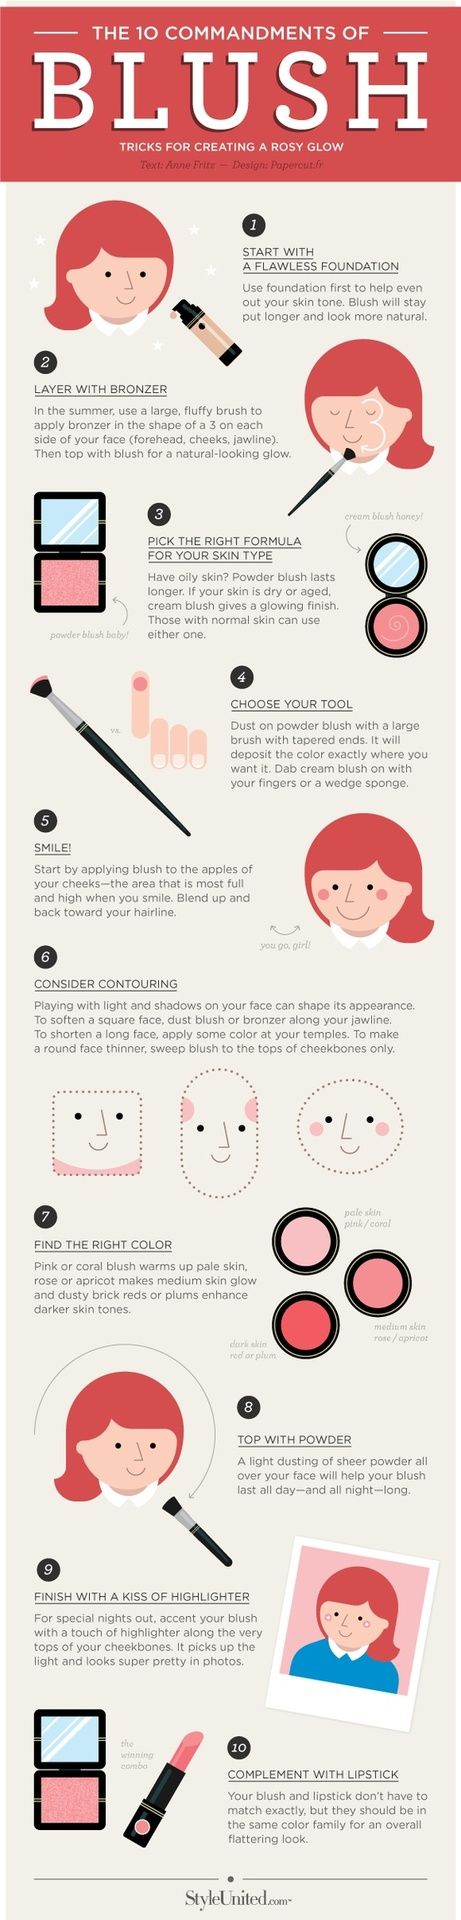 makeup #tips #tricks #beauty #DIY #doityourself #tutorial #stepbystep #howto #practical #guide